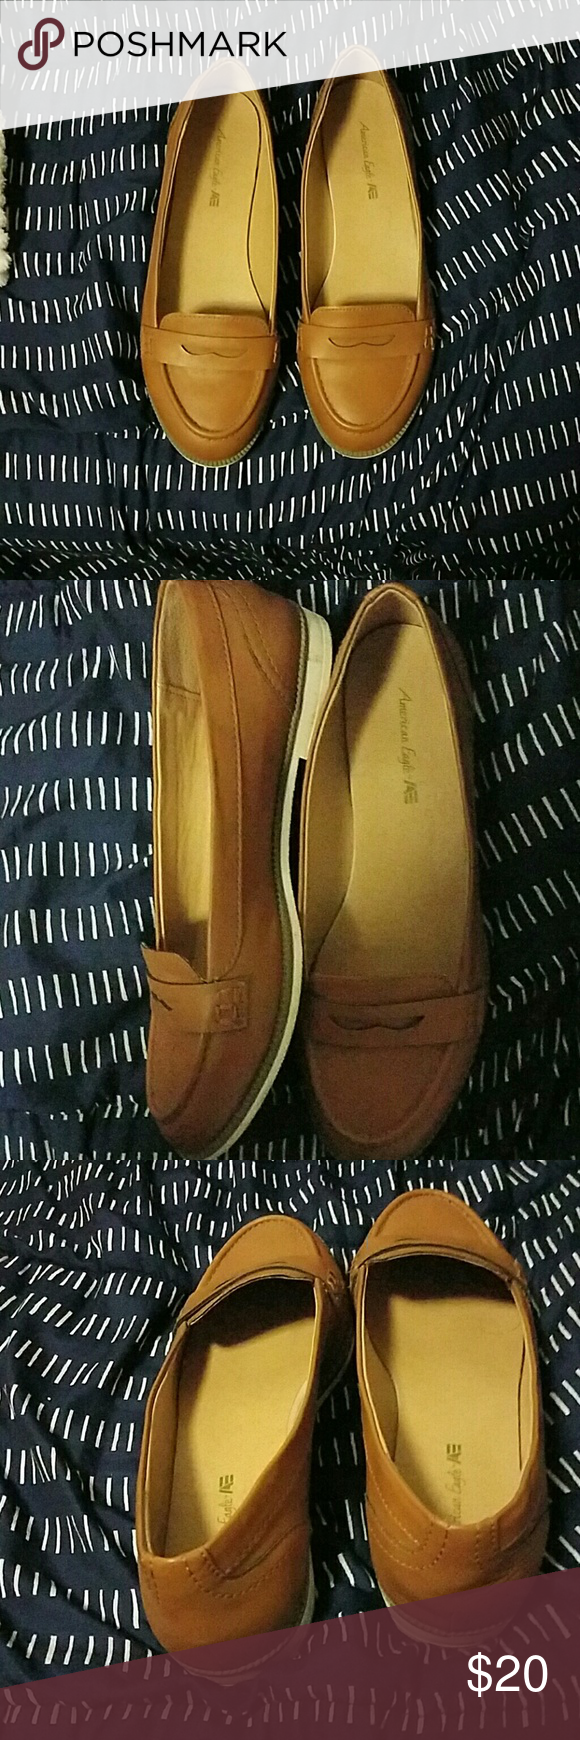 52604eac3cc American eagle penny loafers Tan